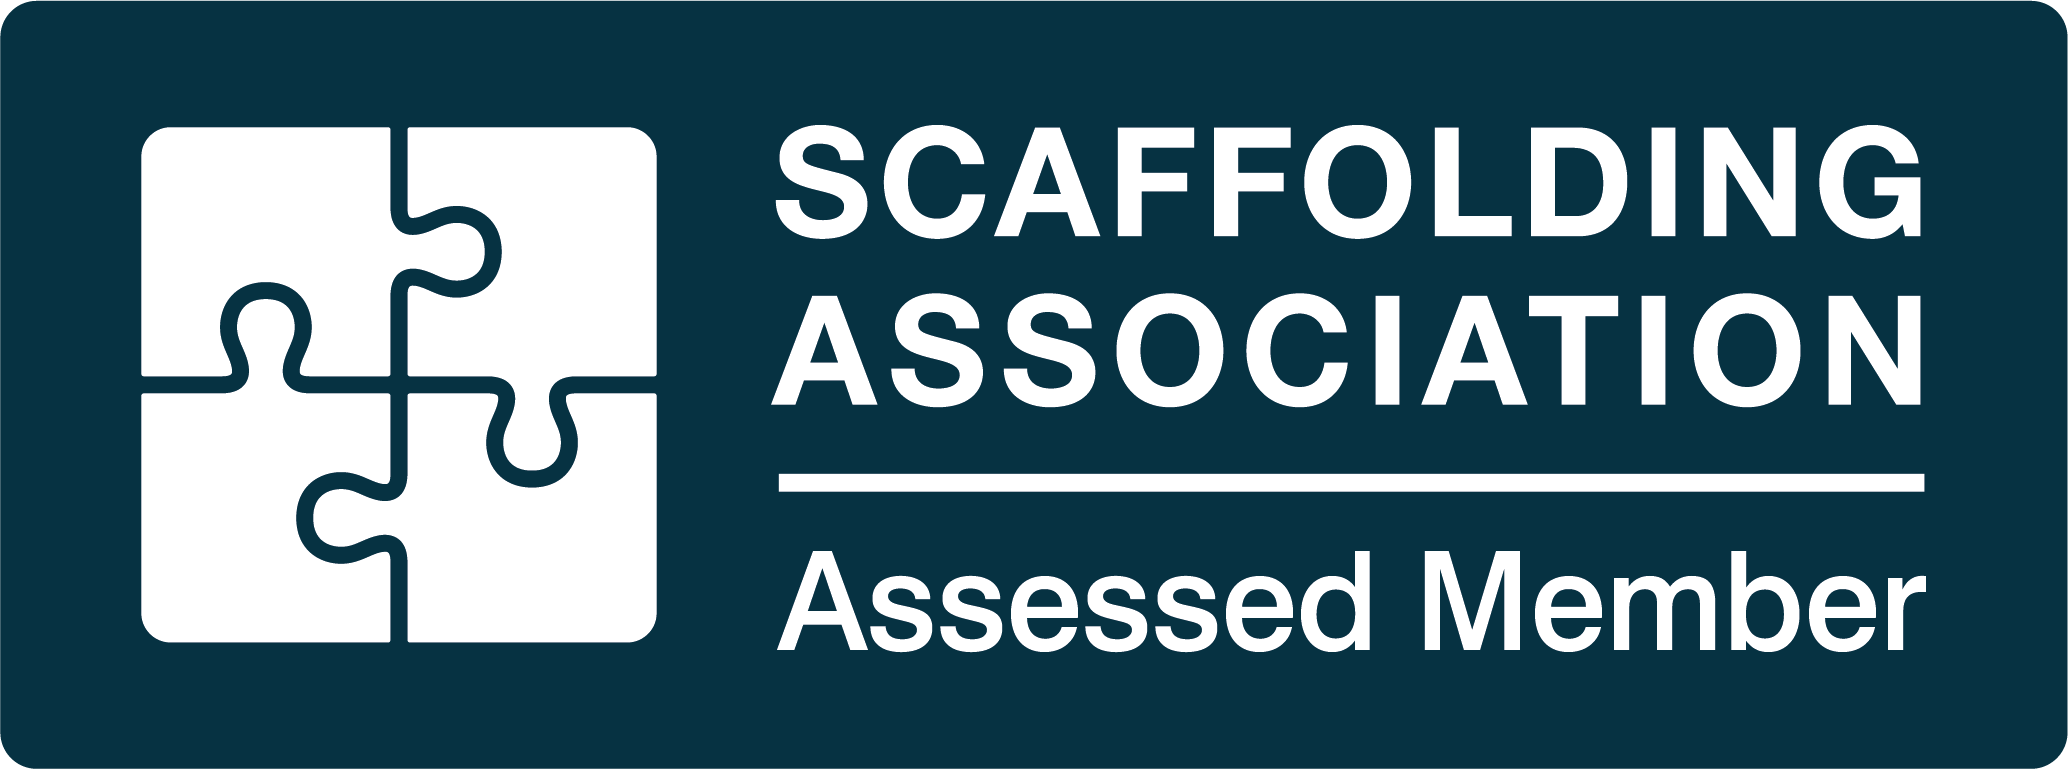 Scaffolding Association Assessed Member Logo